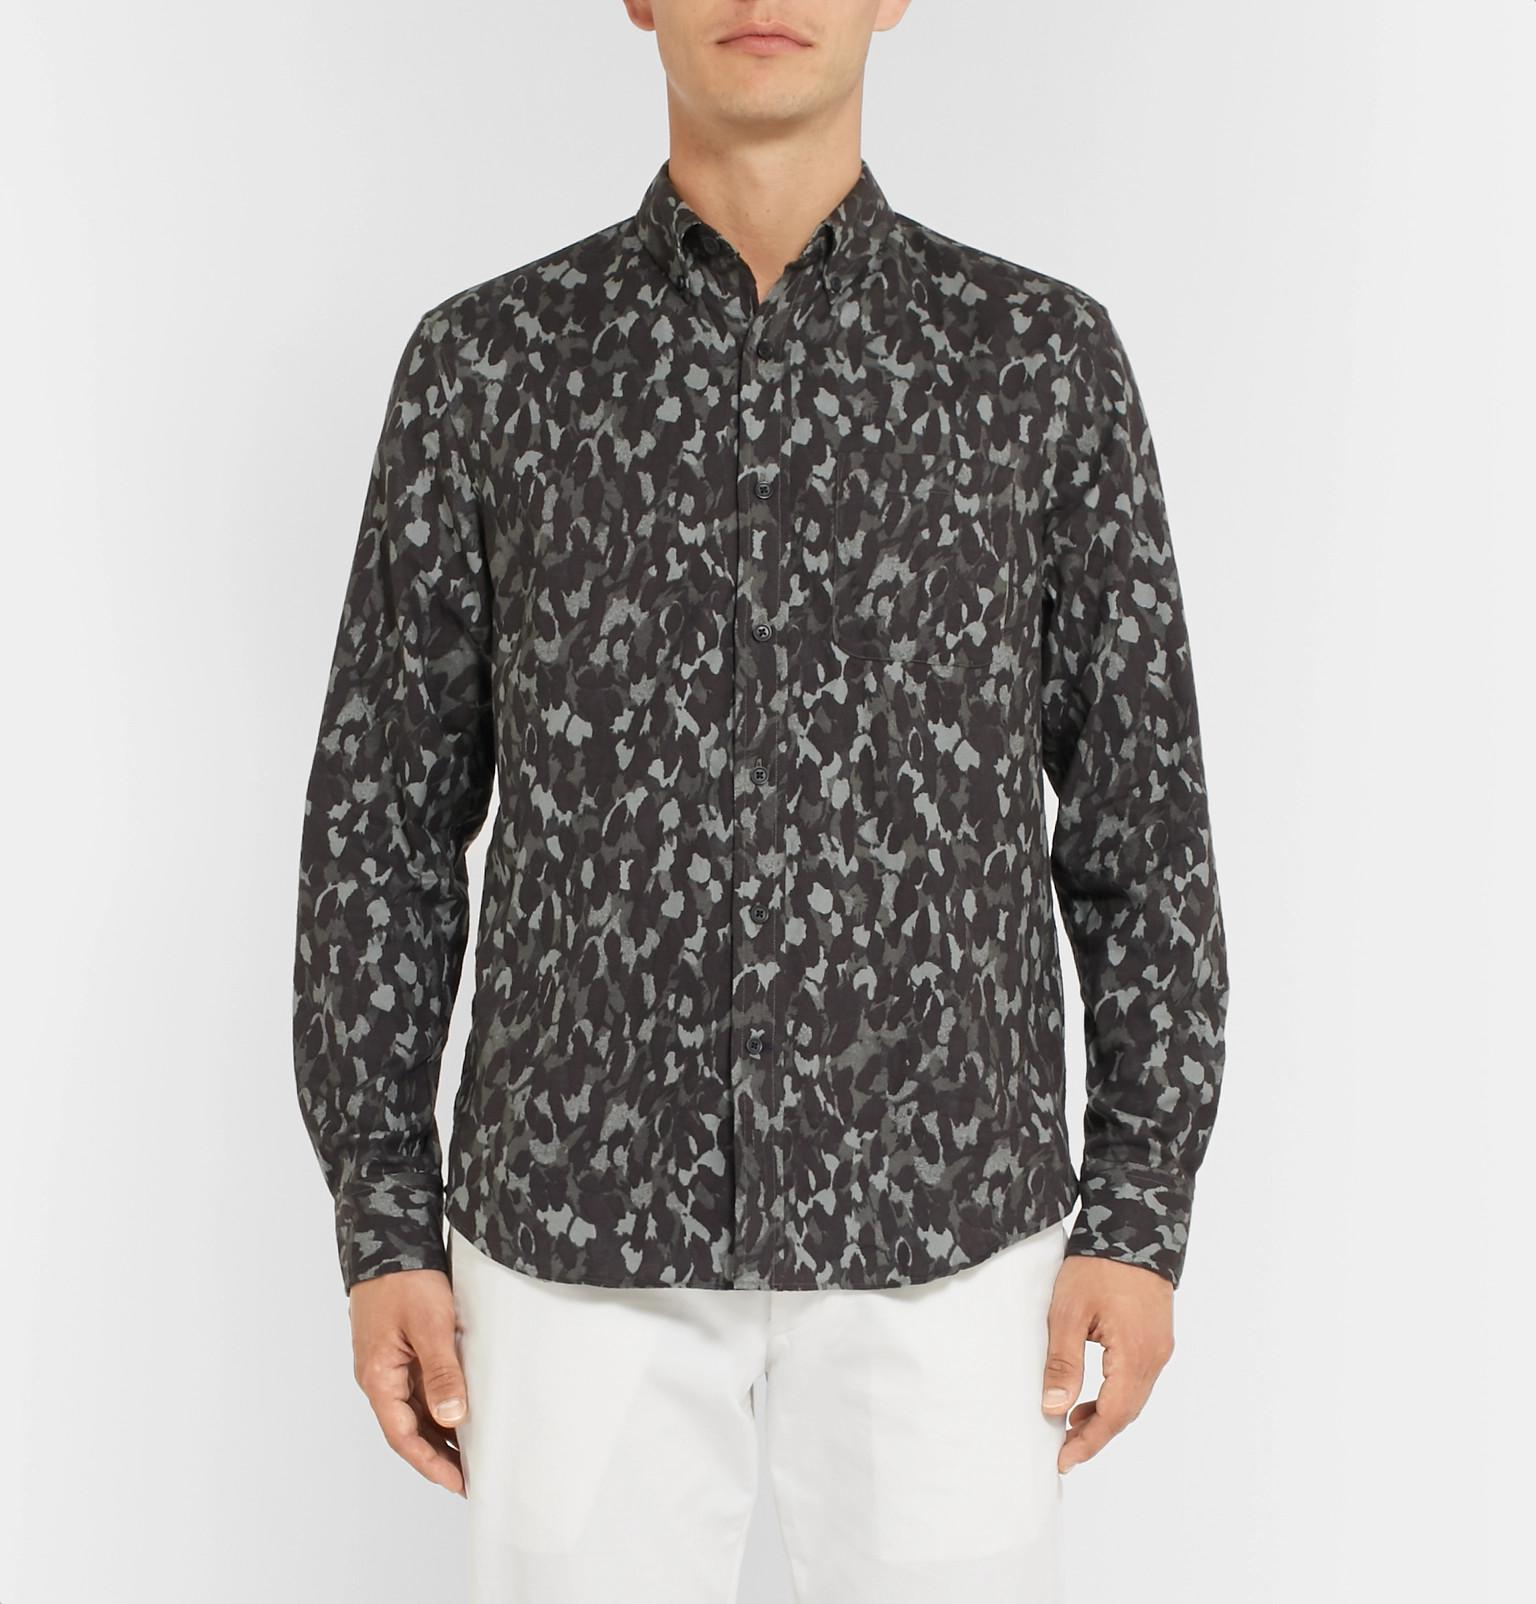 646553949f2 Lyst - Club Monaco Slim-fit Button-down Collar Camouflage-print ...